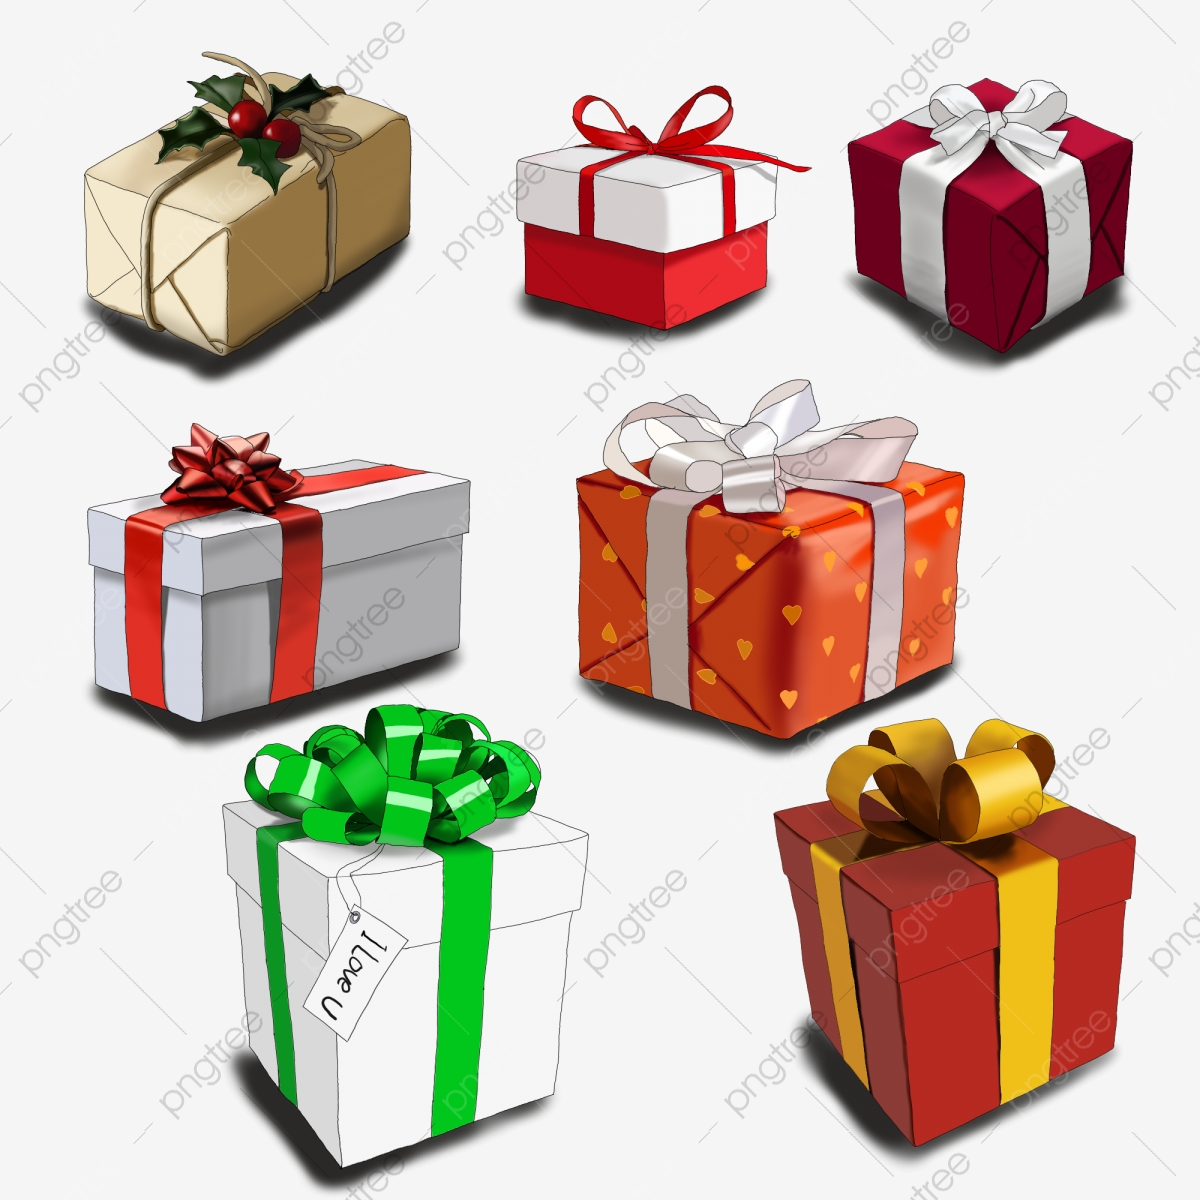 Gifts clipart bunch. A of gift box